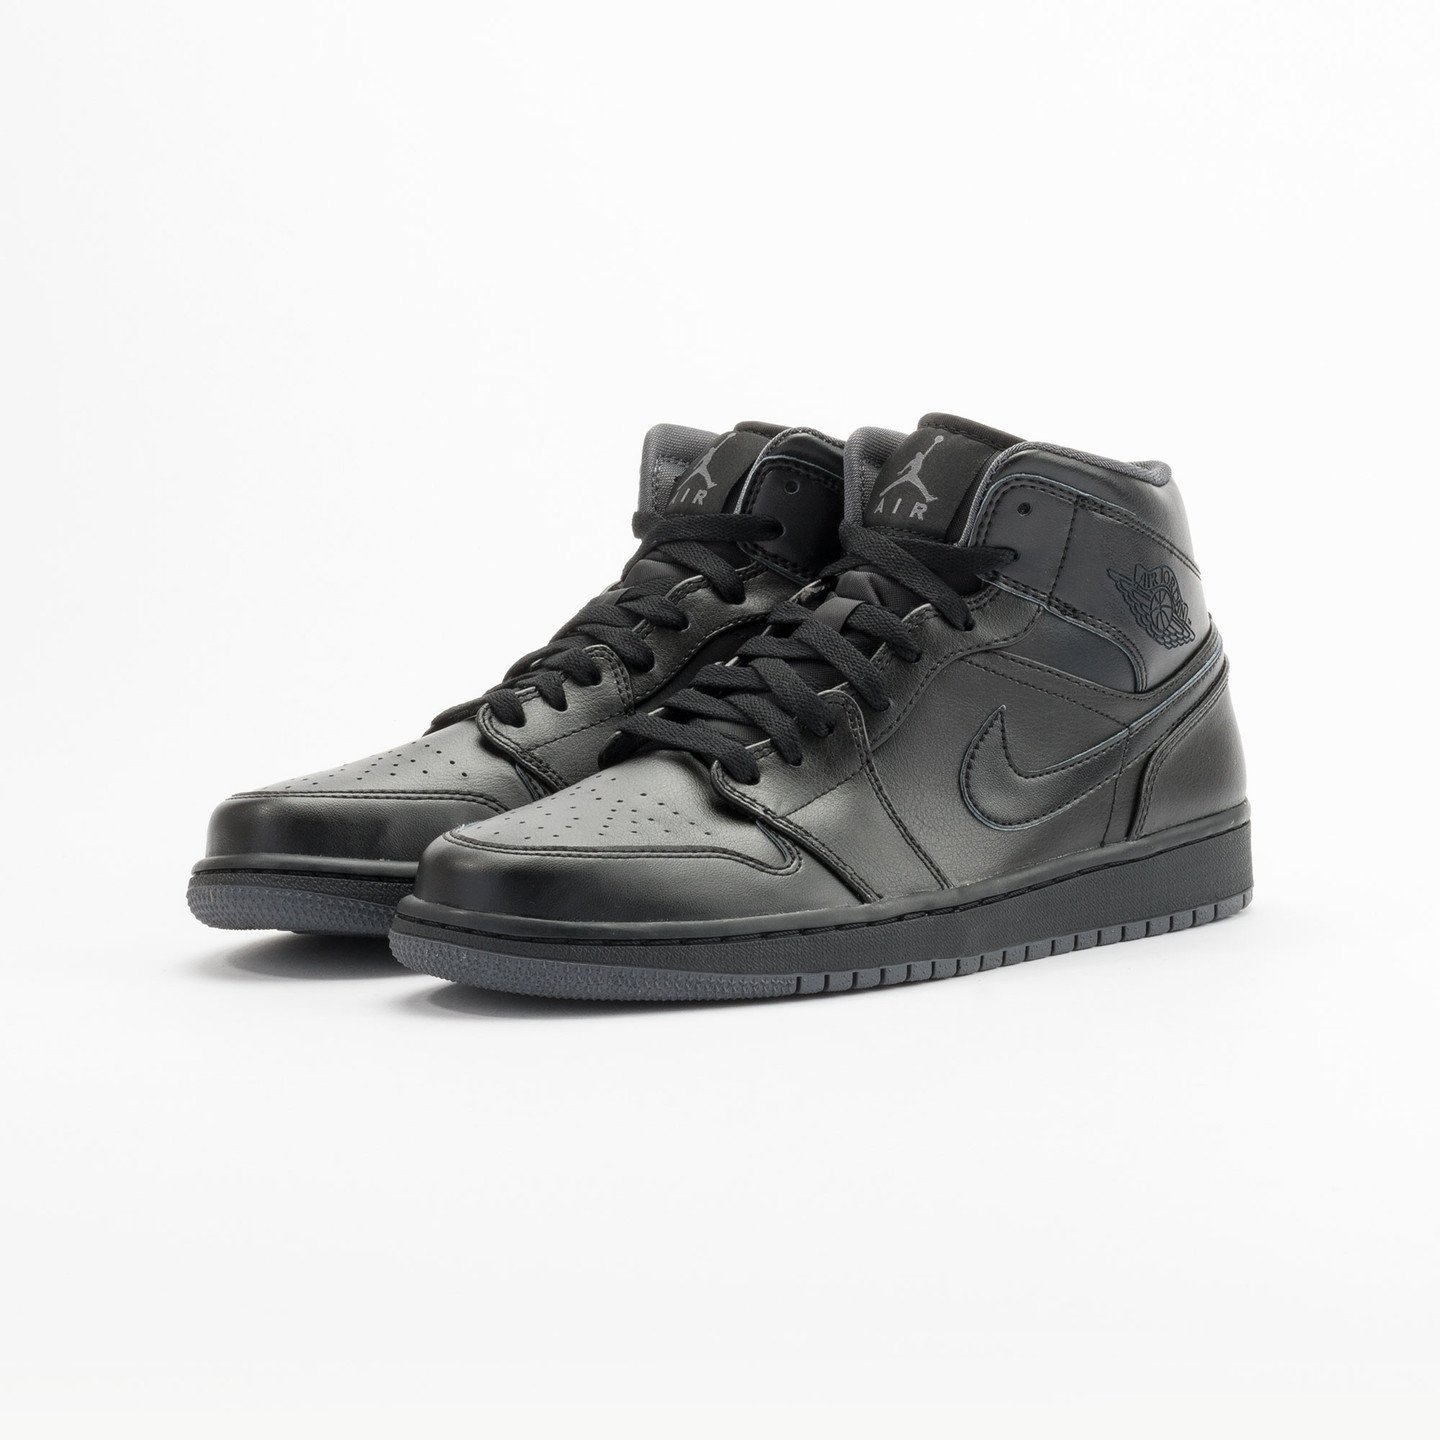 Nike Air Jordan 1 Mid Black / Dark Grey 554724-021-43